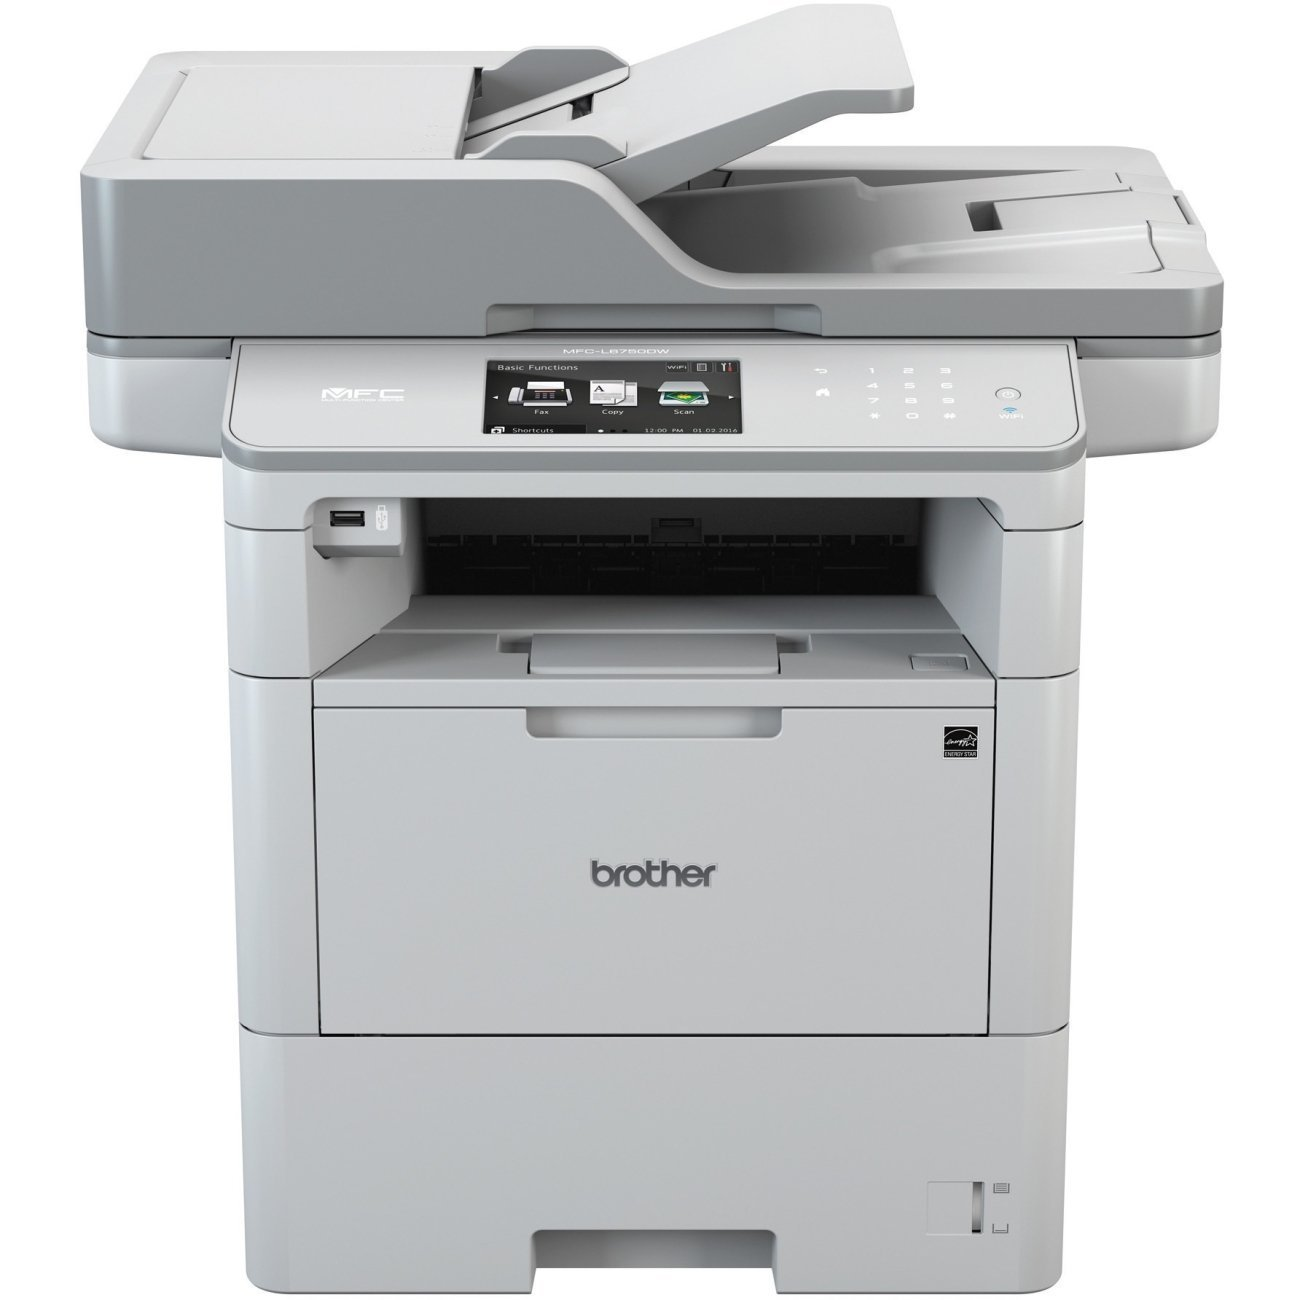 Brother mfc-l6750dw.jpg